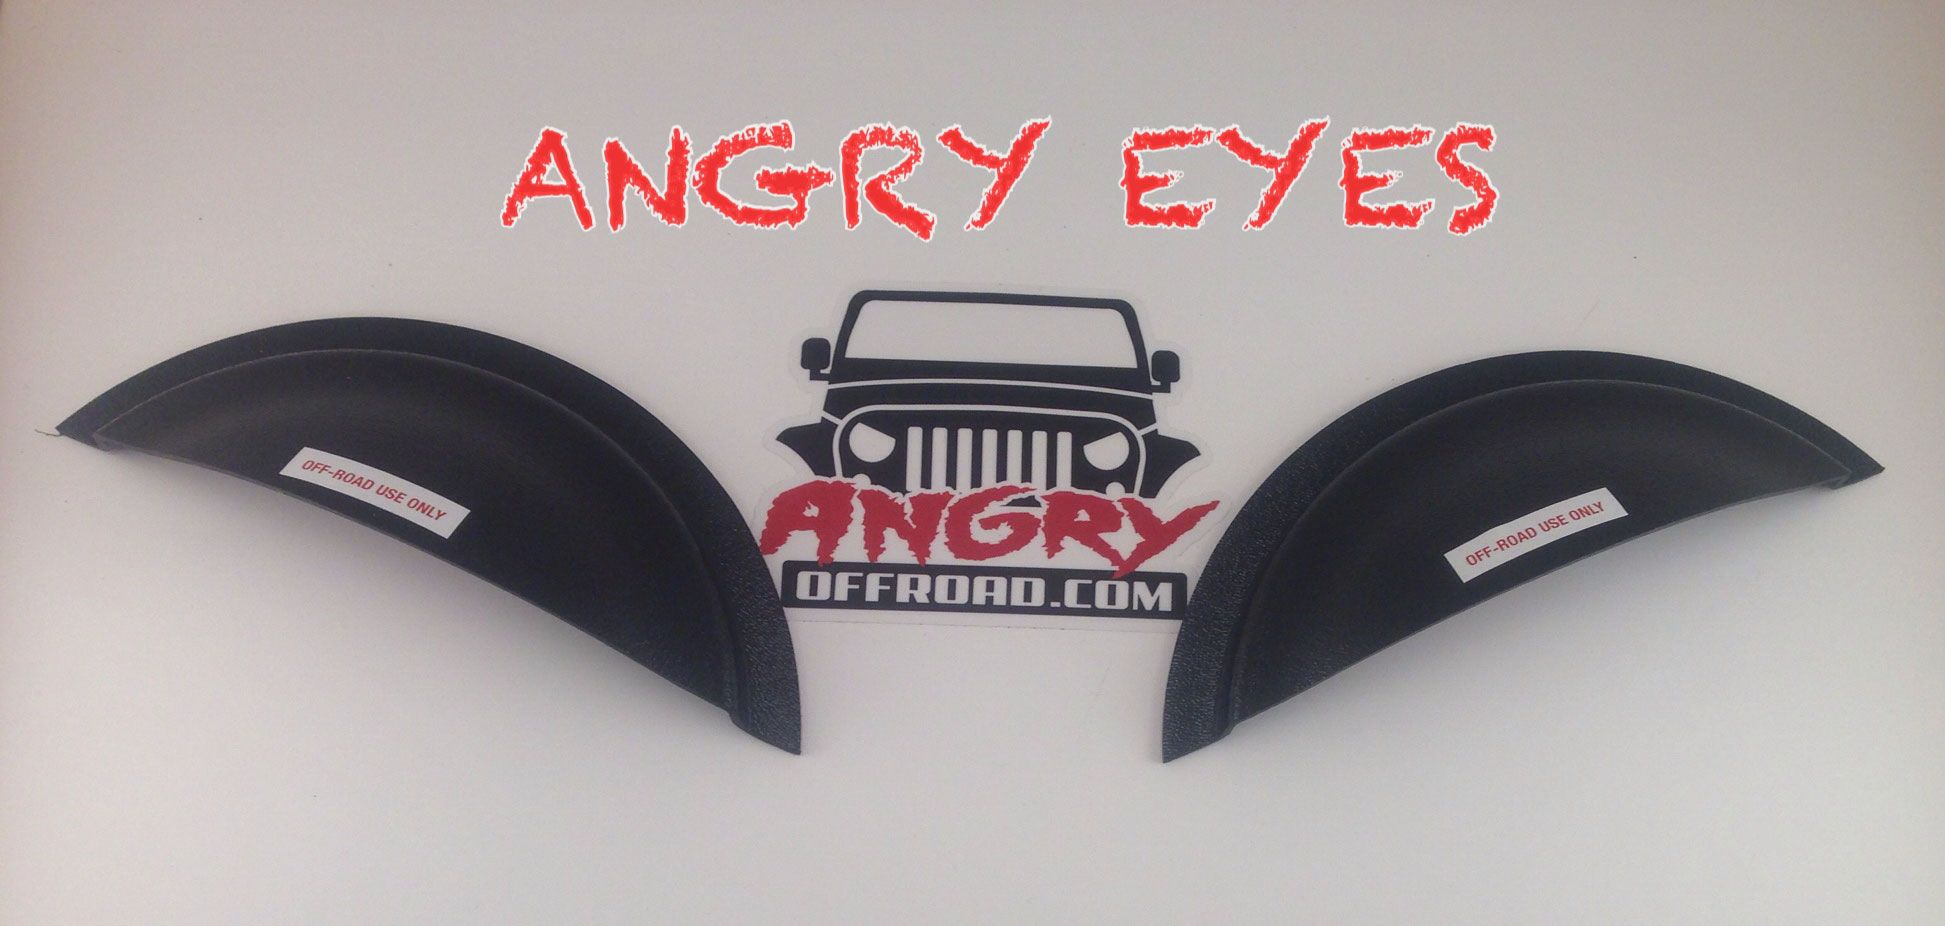 Angry Eyes Jeep Headlight Cover Angry Eyes Jeep Headlight Covers Jeep Liberty Custom Jeep Wrangler Custom Jeep